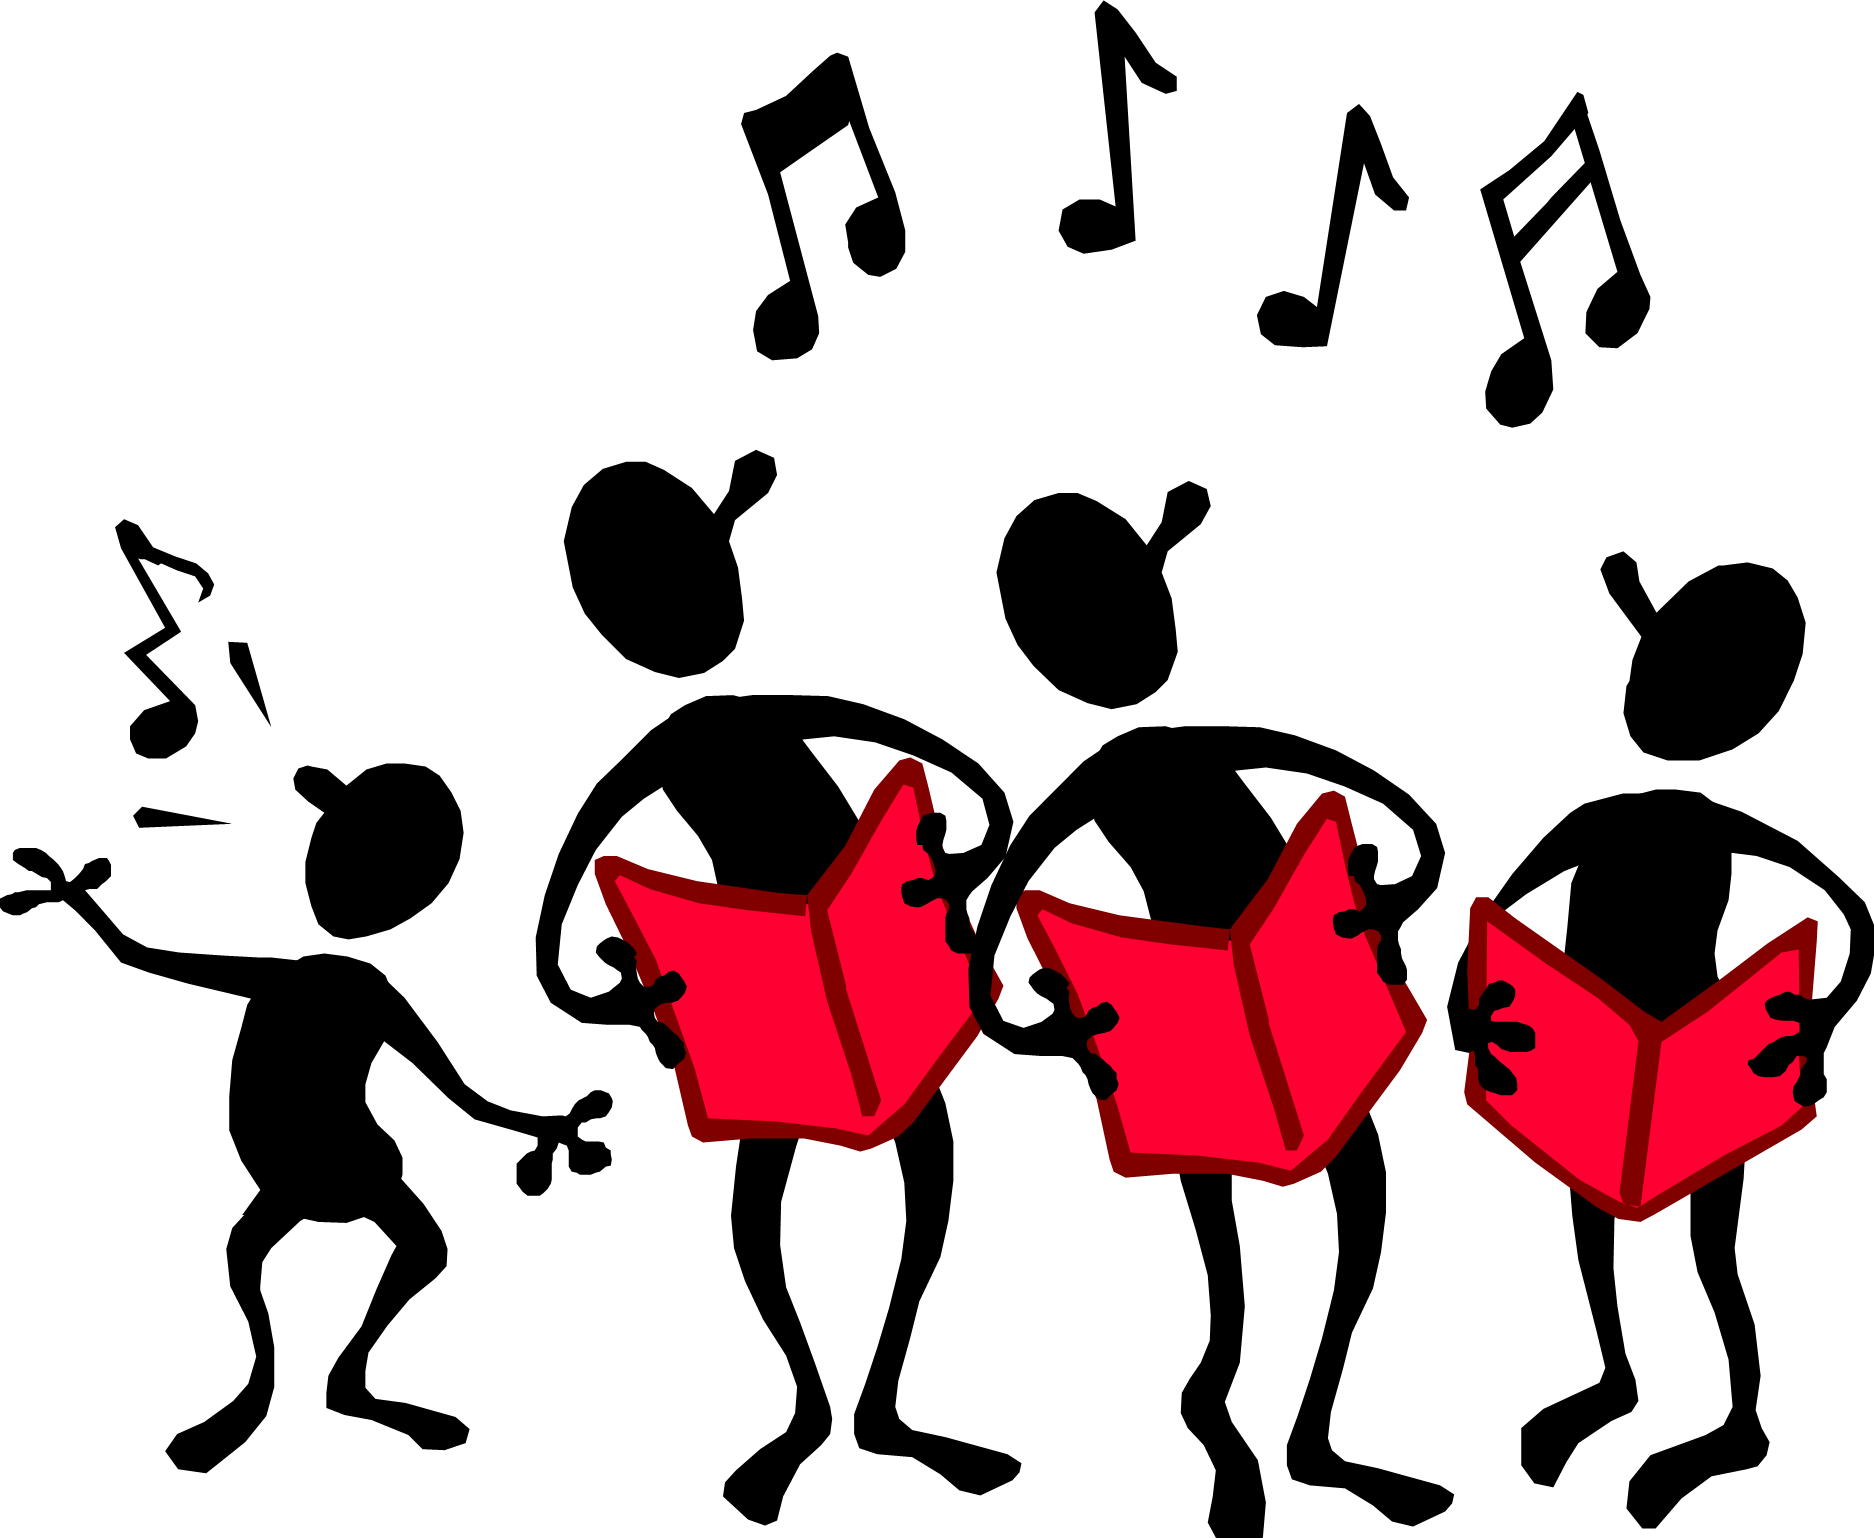 Person singing clipart clipart images gallery for free.